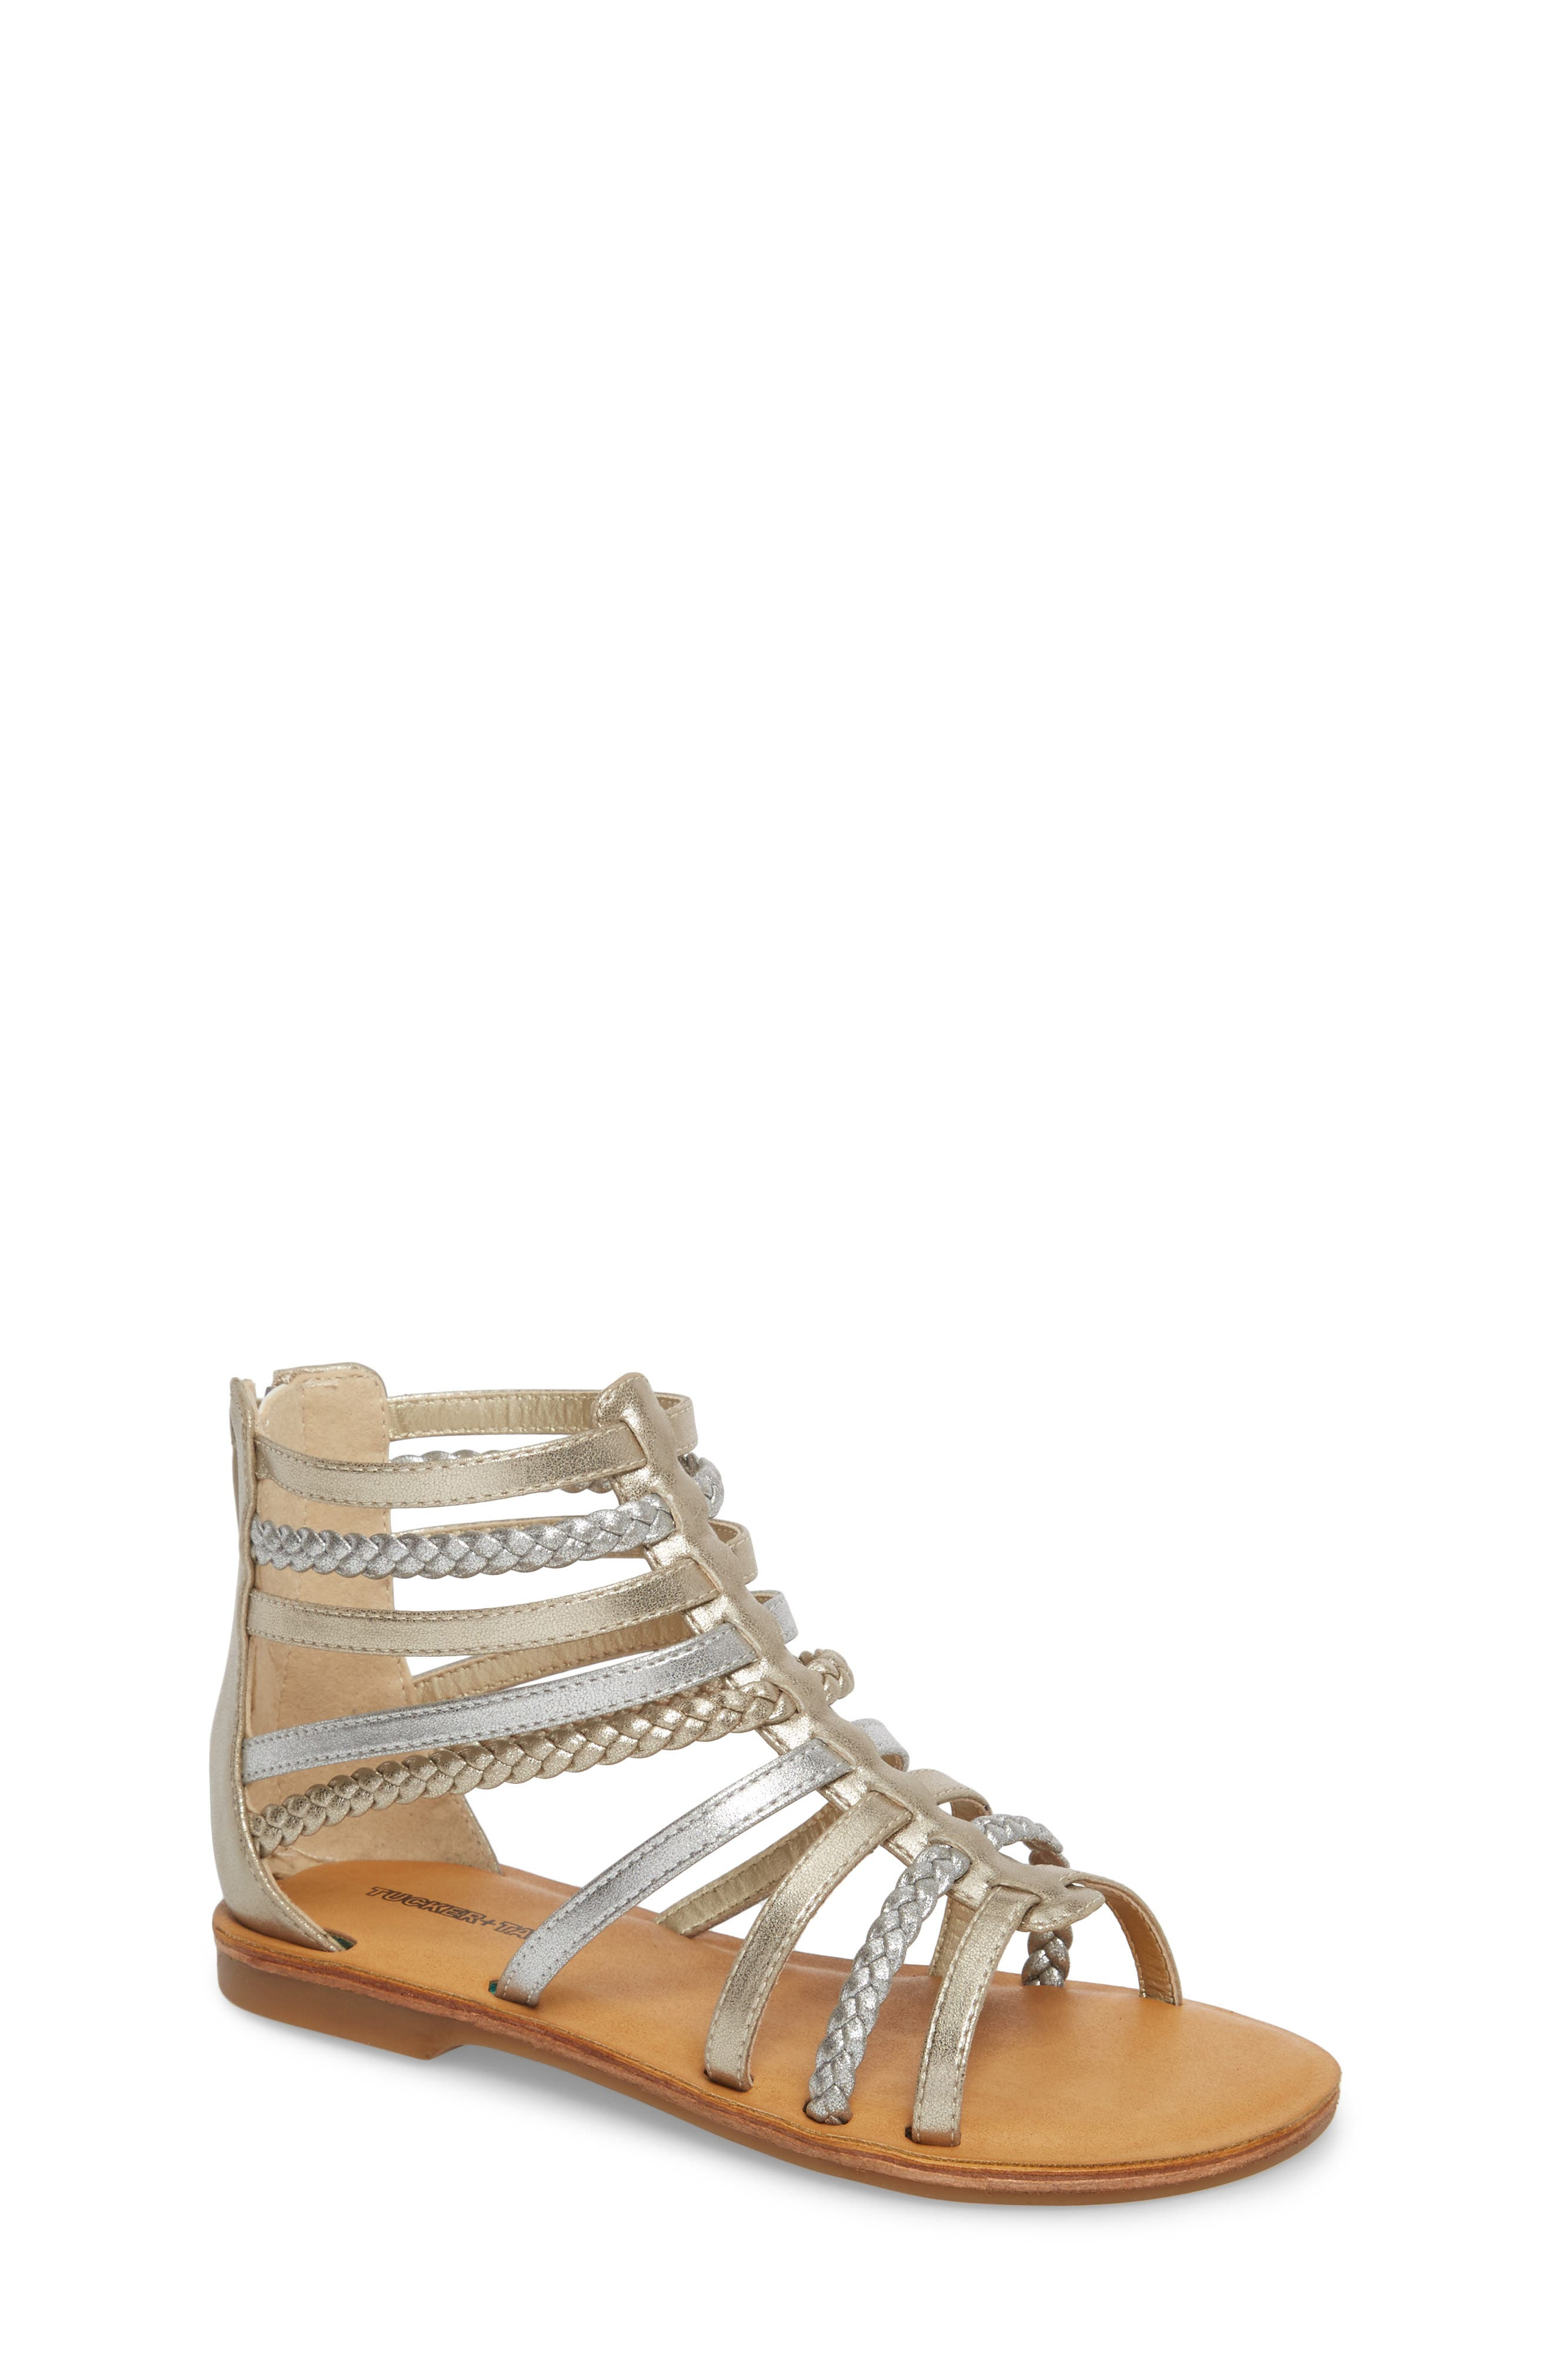 Sonja Braided Gladiator Sandal,                             Main thumbnail 1, color,                             Silver/ Gold Faux Leather